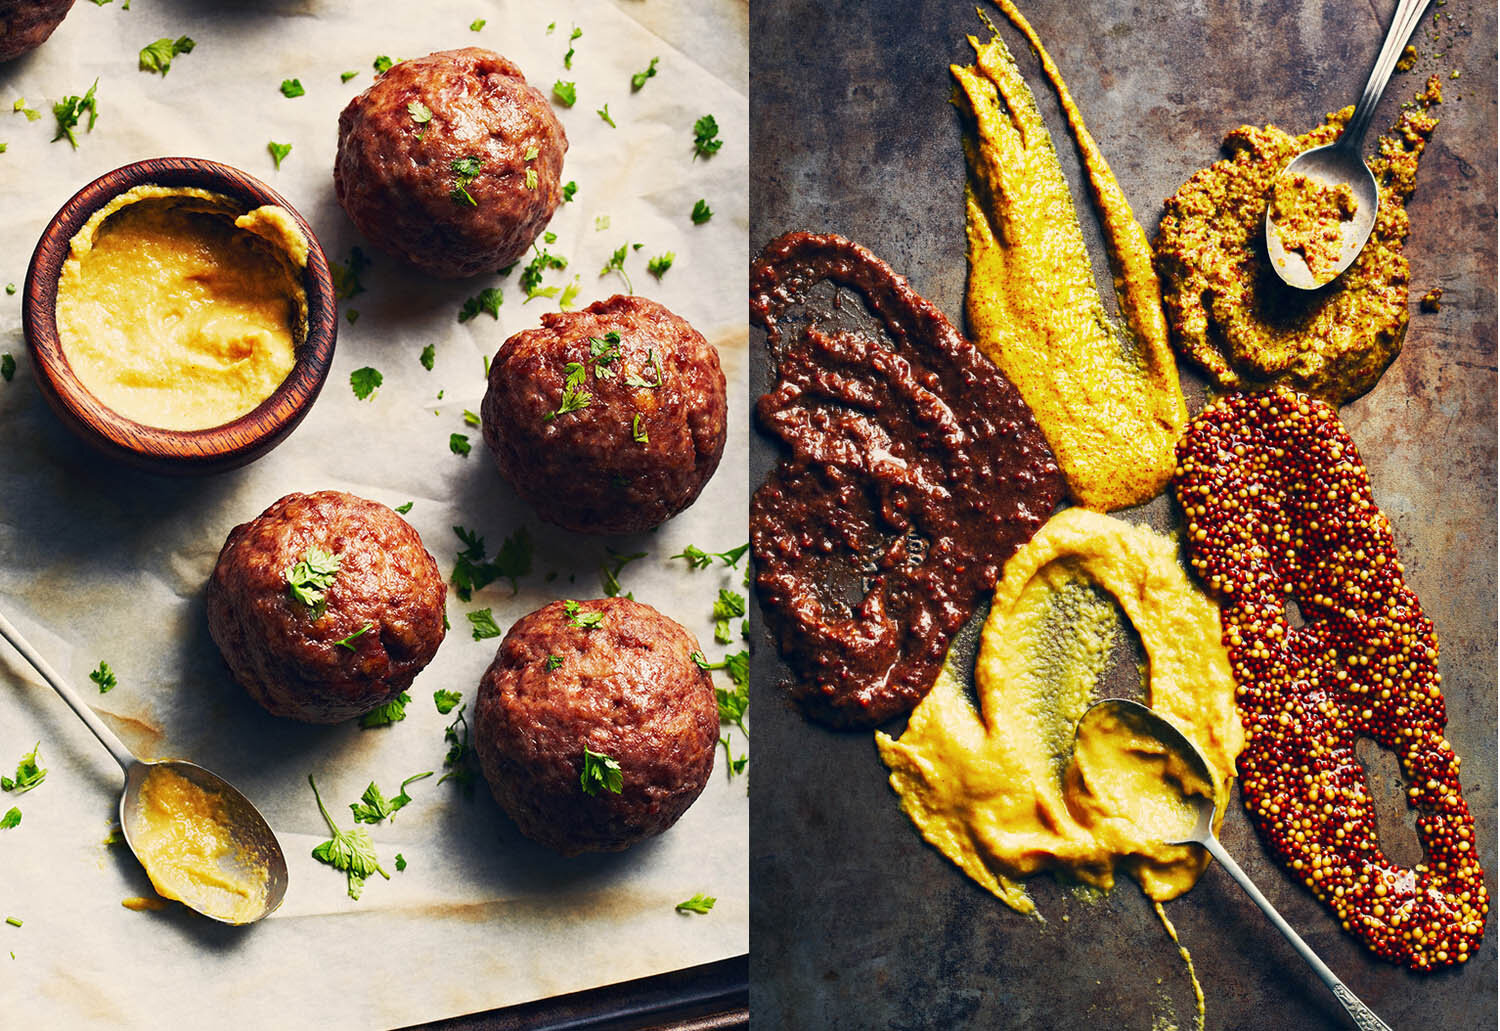 34. With+Meatballs+&+Mustard+5Ways.jpg